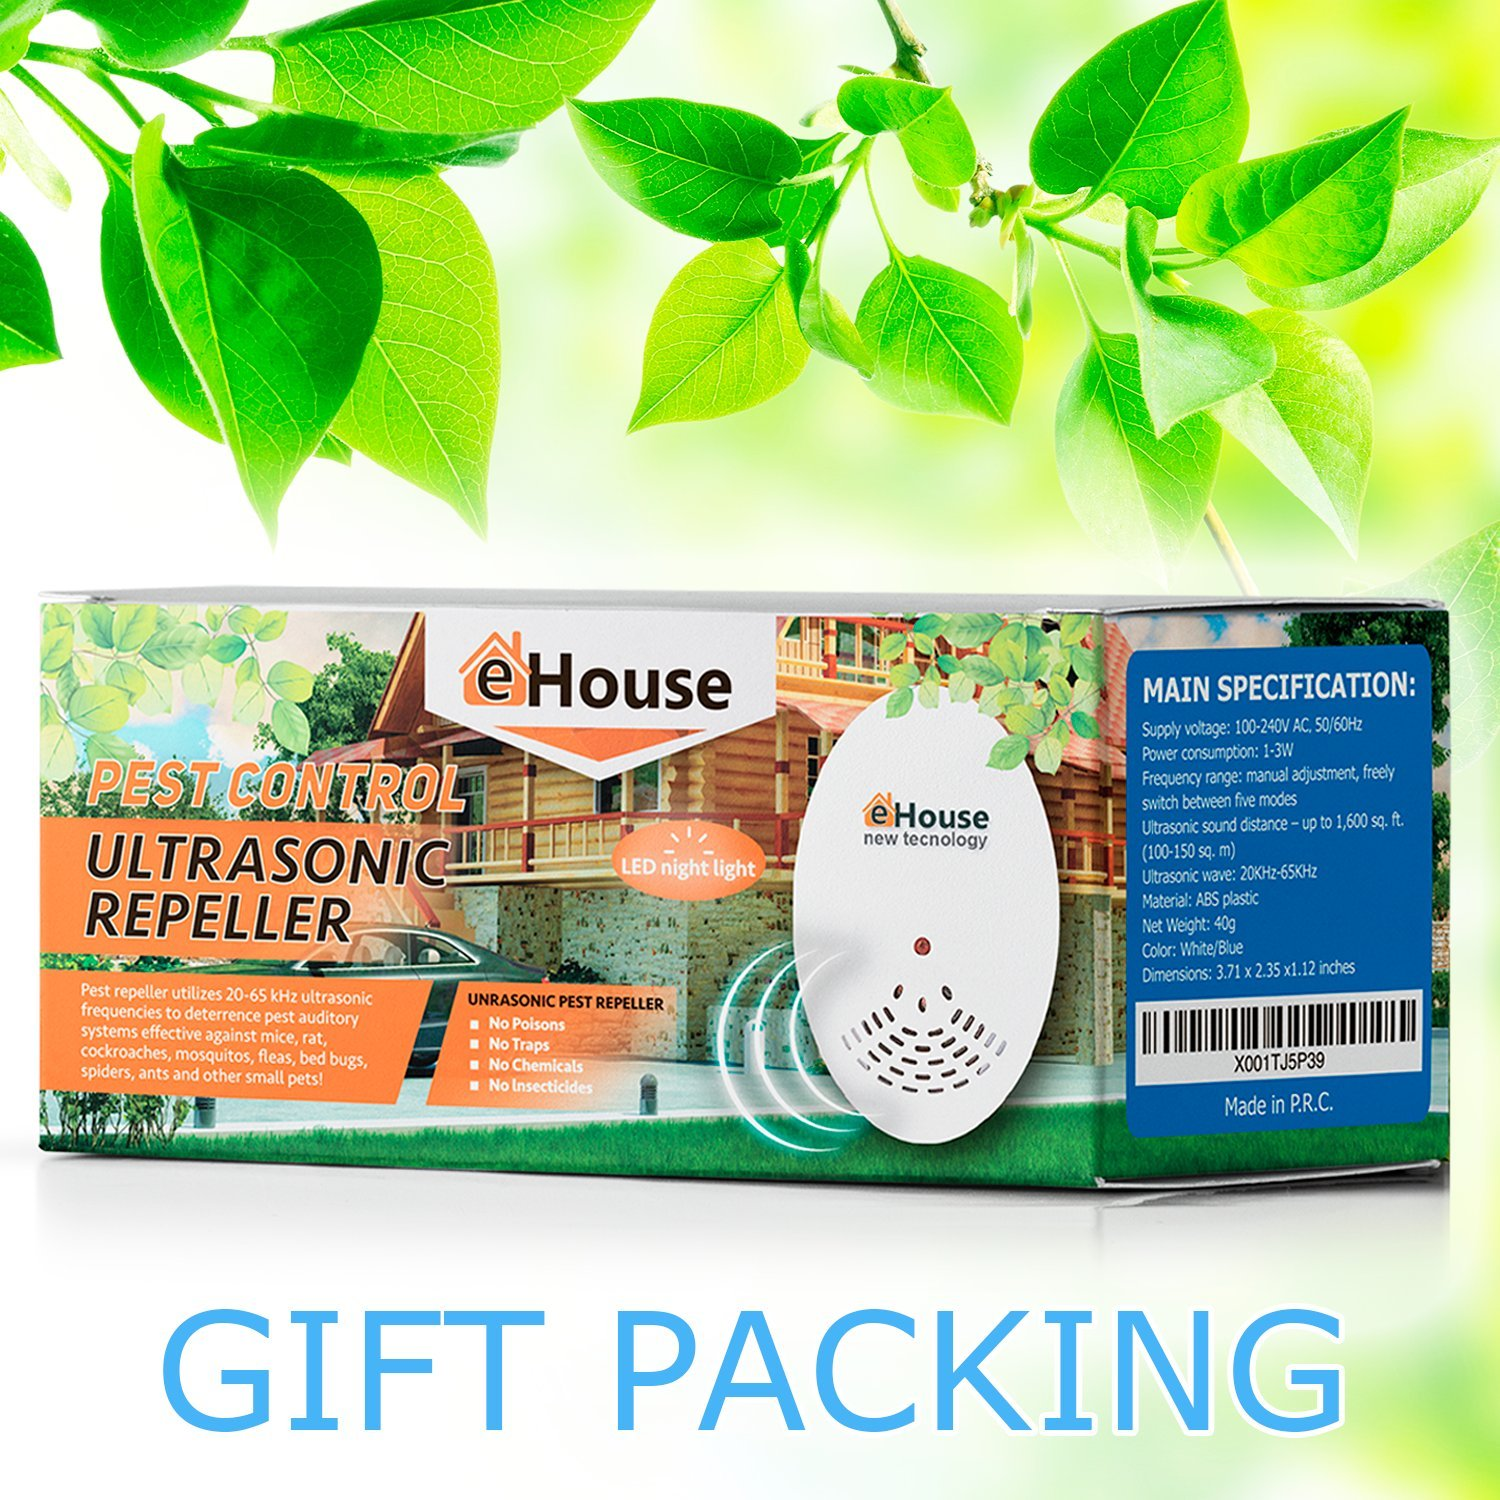 EHOUSE Electronic Indoor Plug-in - Get rid of - Rodents, Mice, Rats,  Squirrels, Bats, Insects, Bed Bugs, Ants, Fleas, Mosquitos, Fly, Spiders,